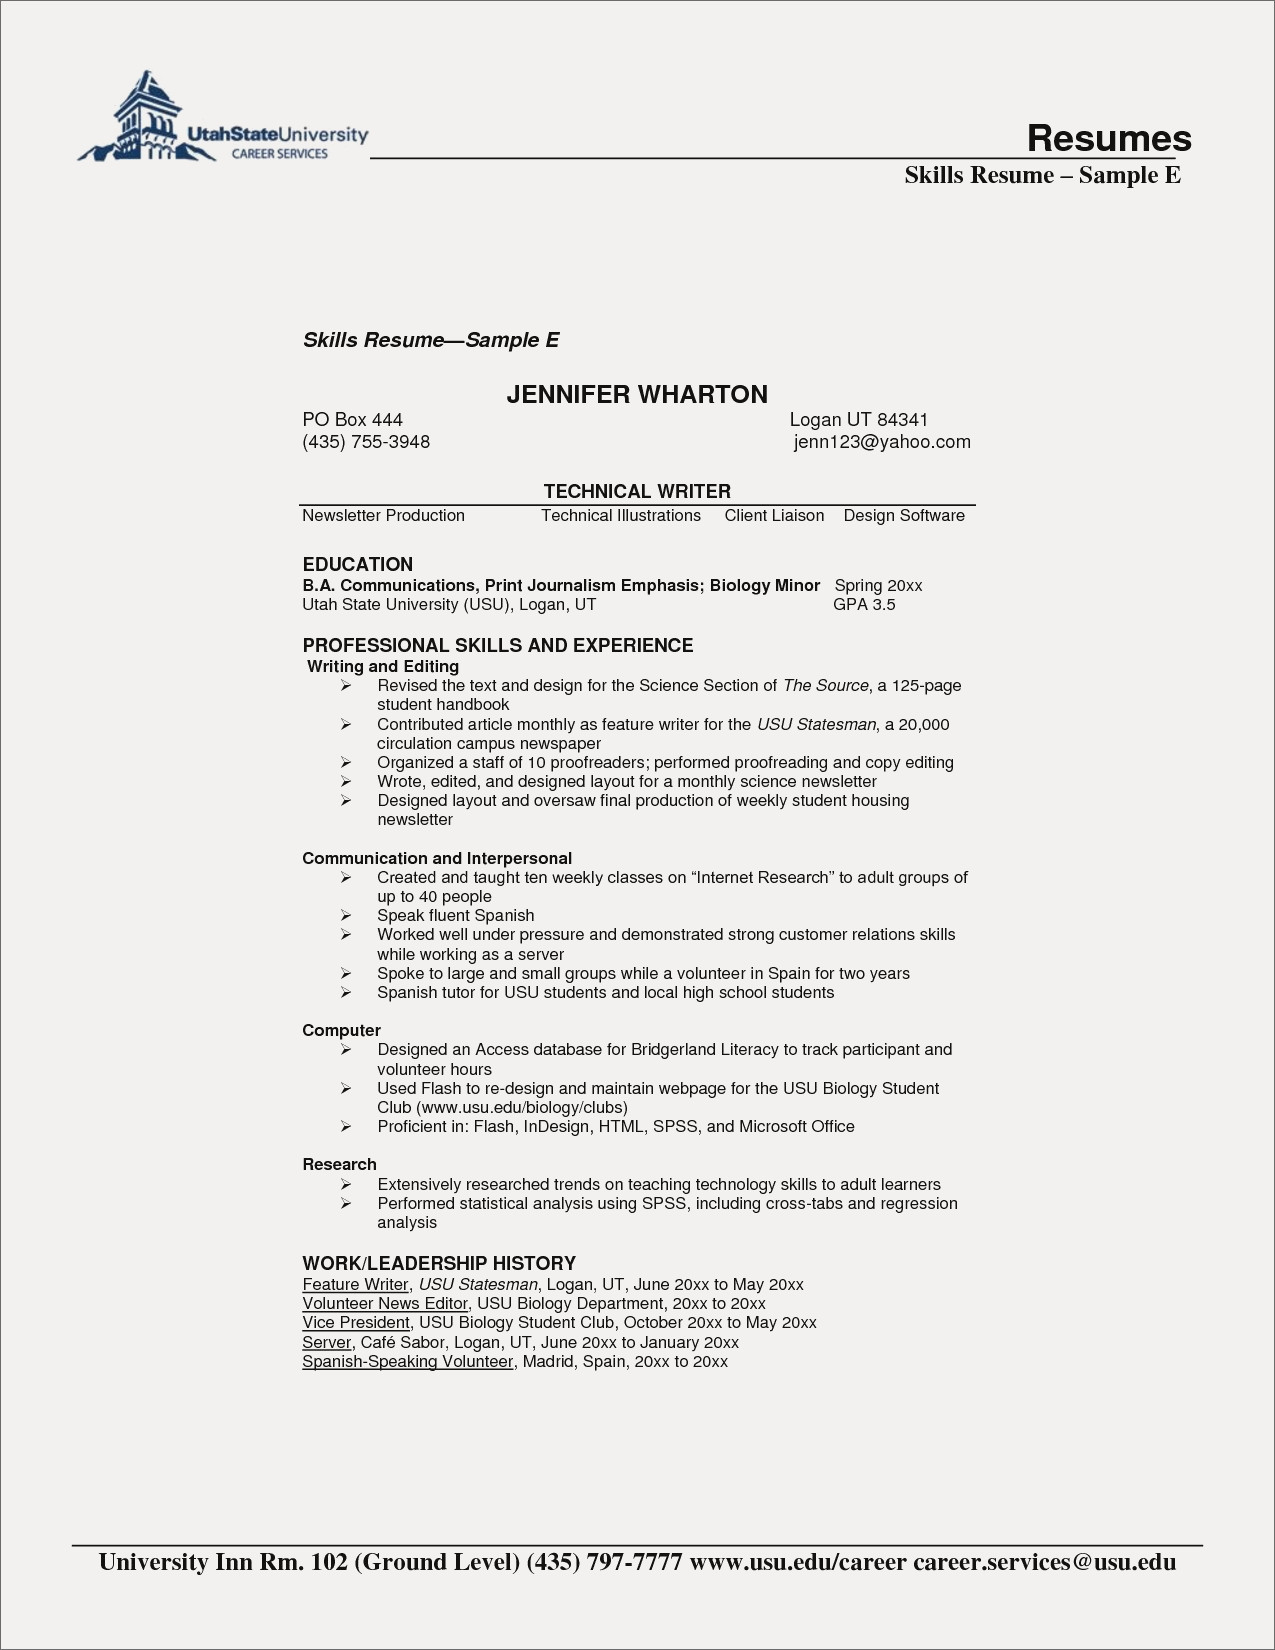 Resume Template for Kids - Cheap Resumes Fresh Puter Skills Example Unique Examples Resumes